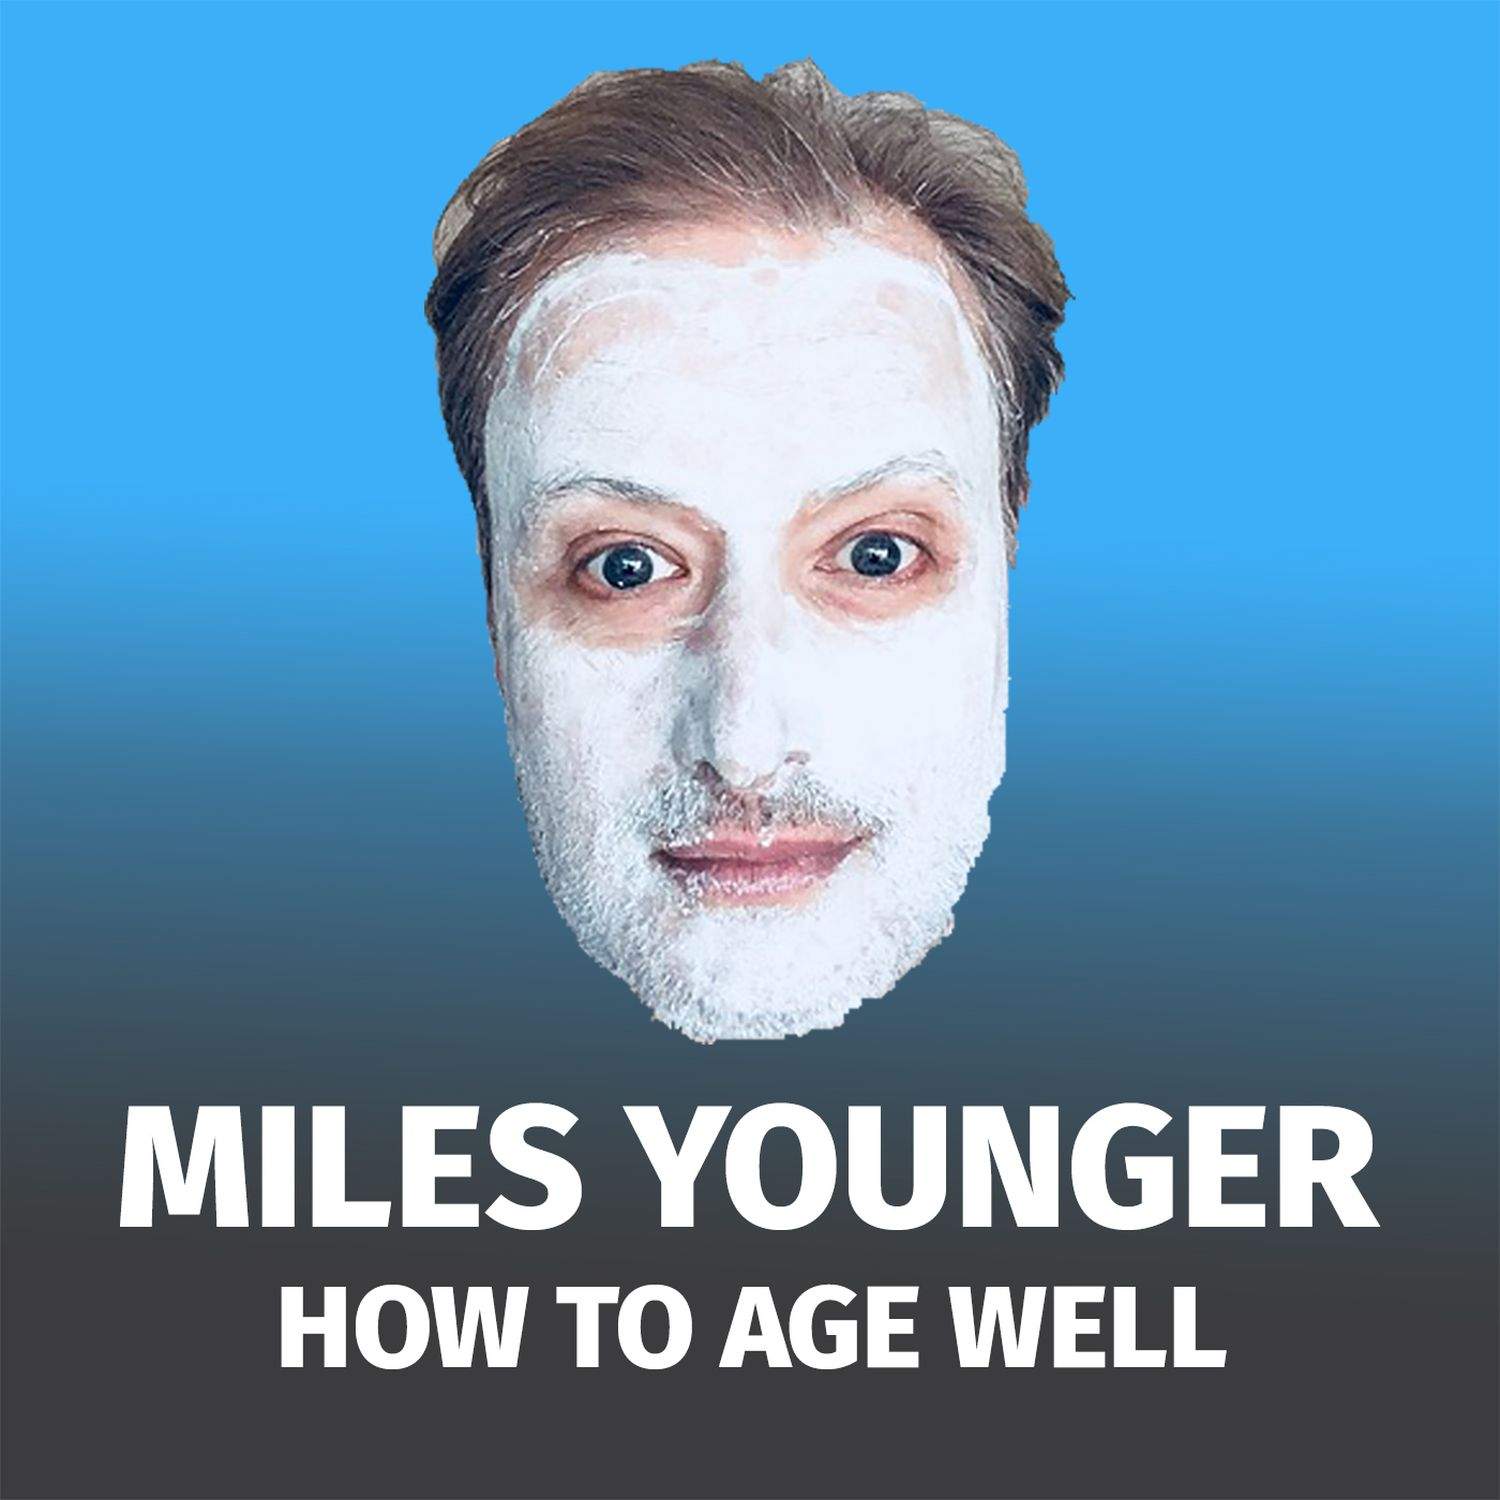 Miles Younger - How to Age Well